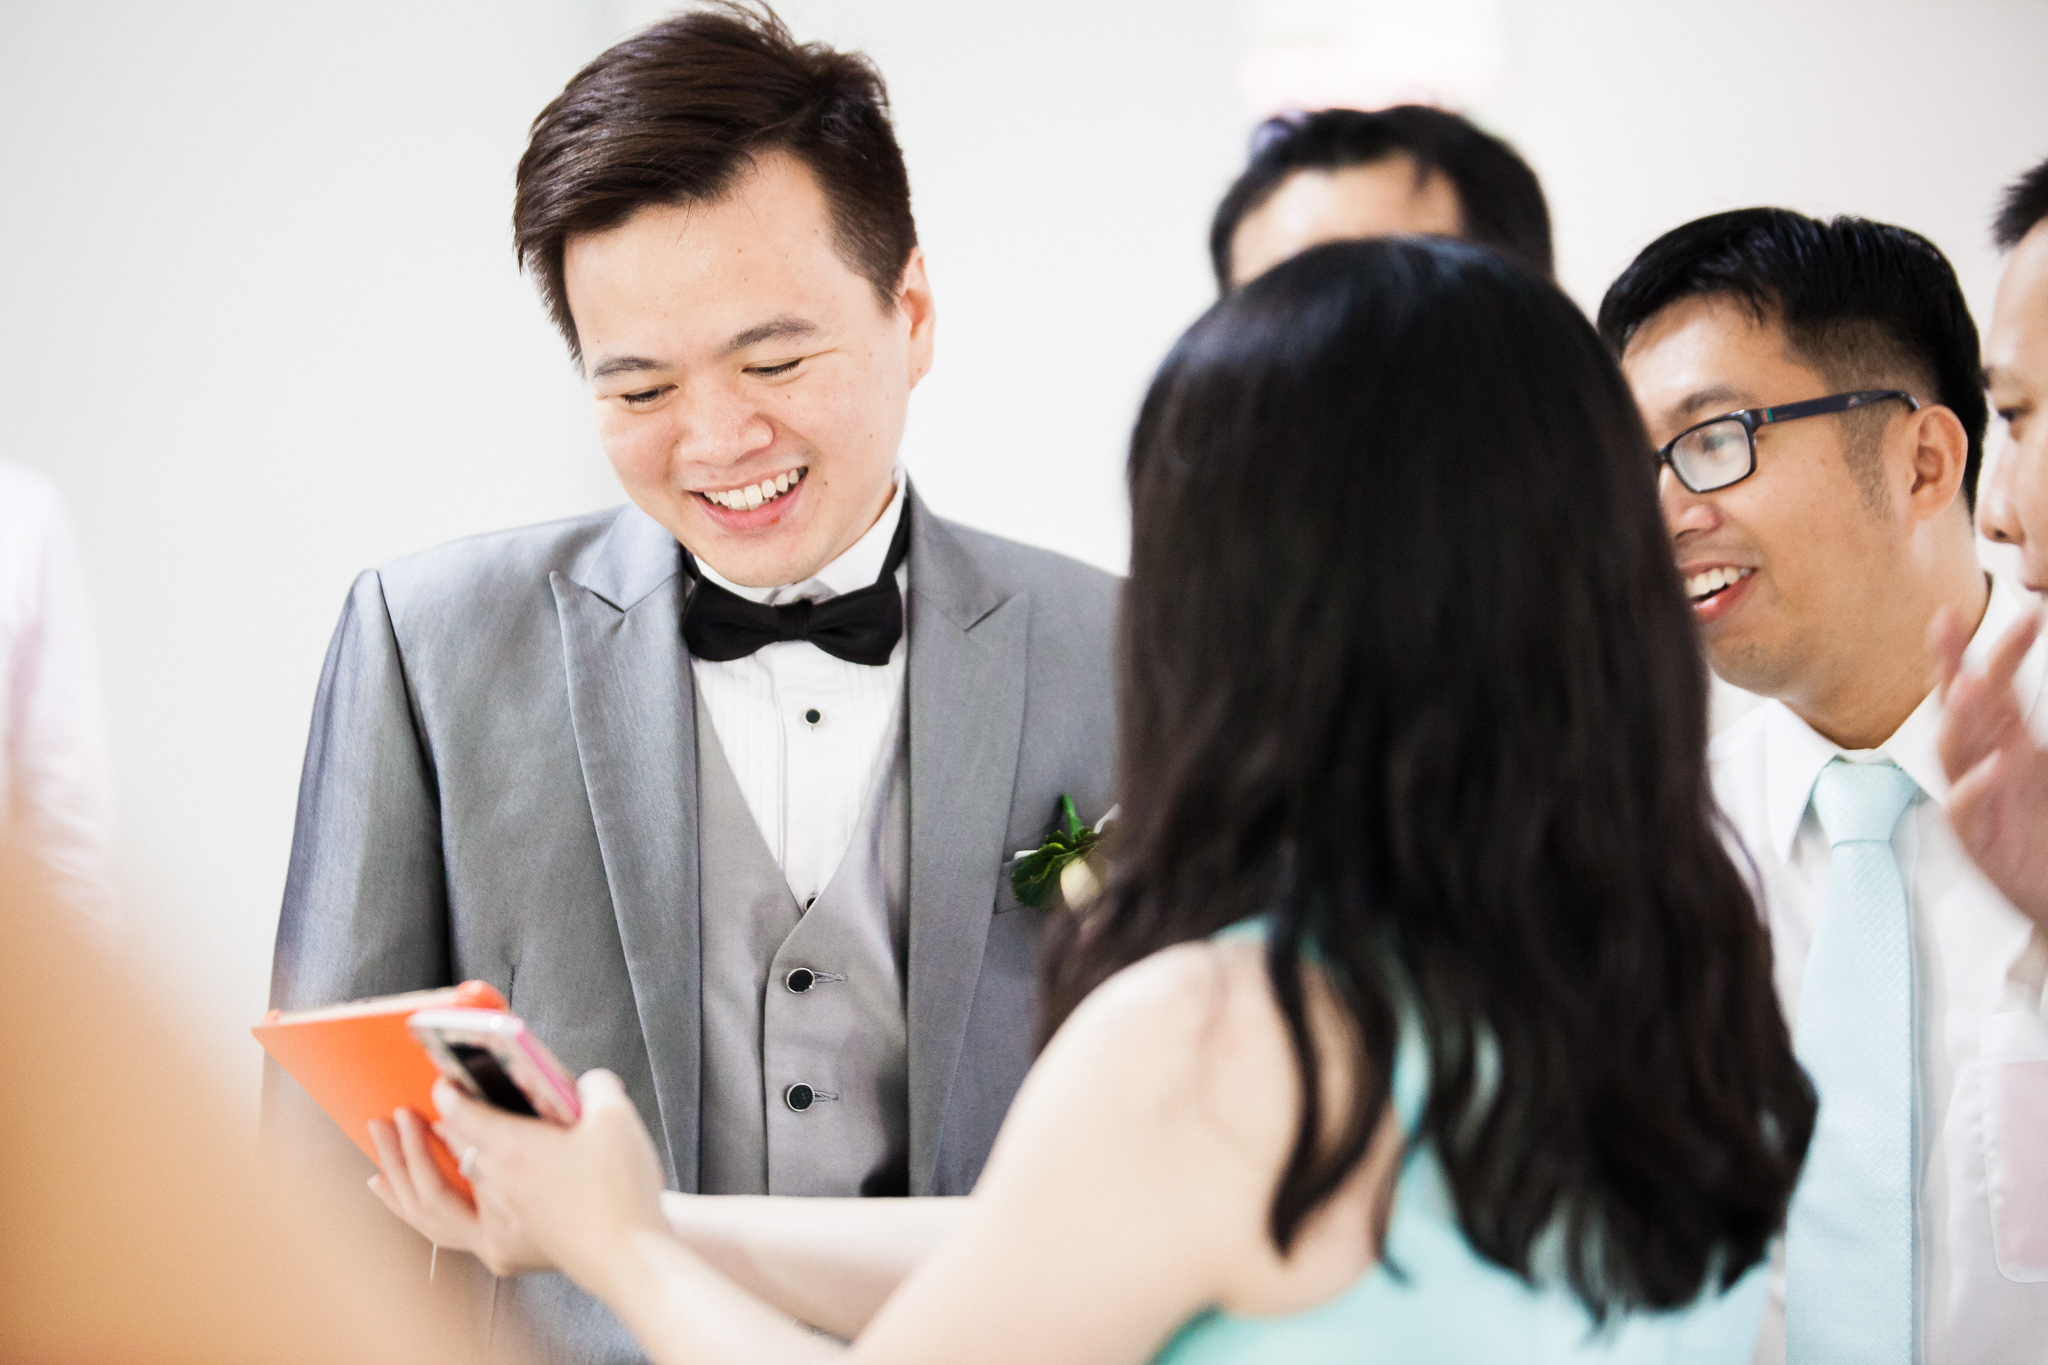 Shiwei & Chee Chin Wedding Day Highlights (resized for sharing) -032.jpg